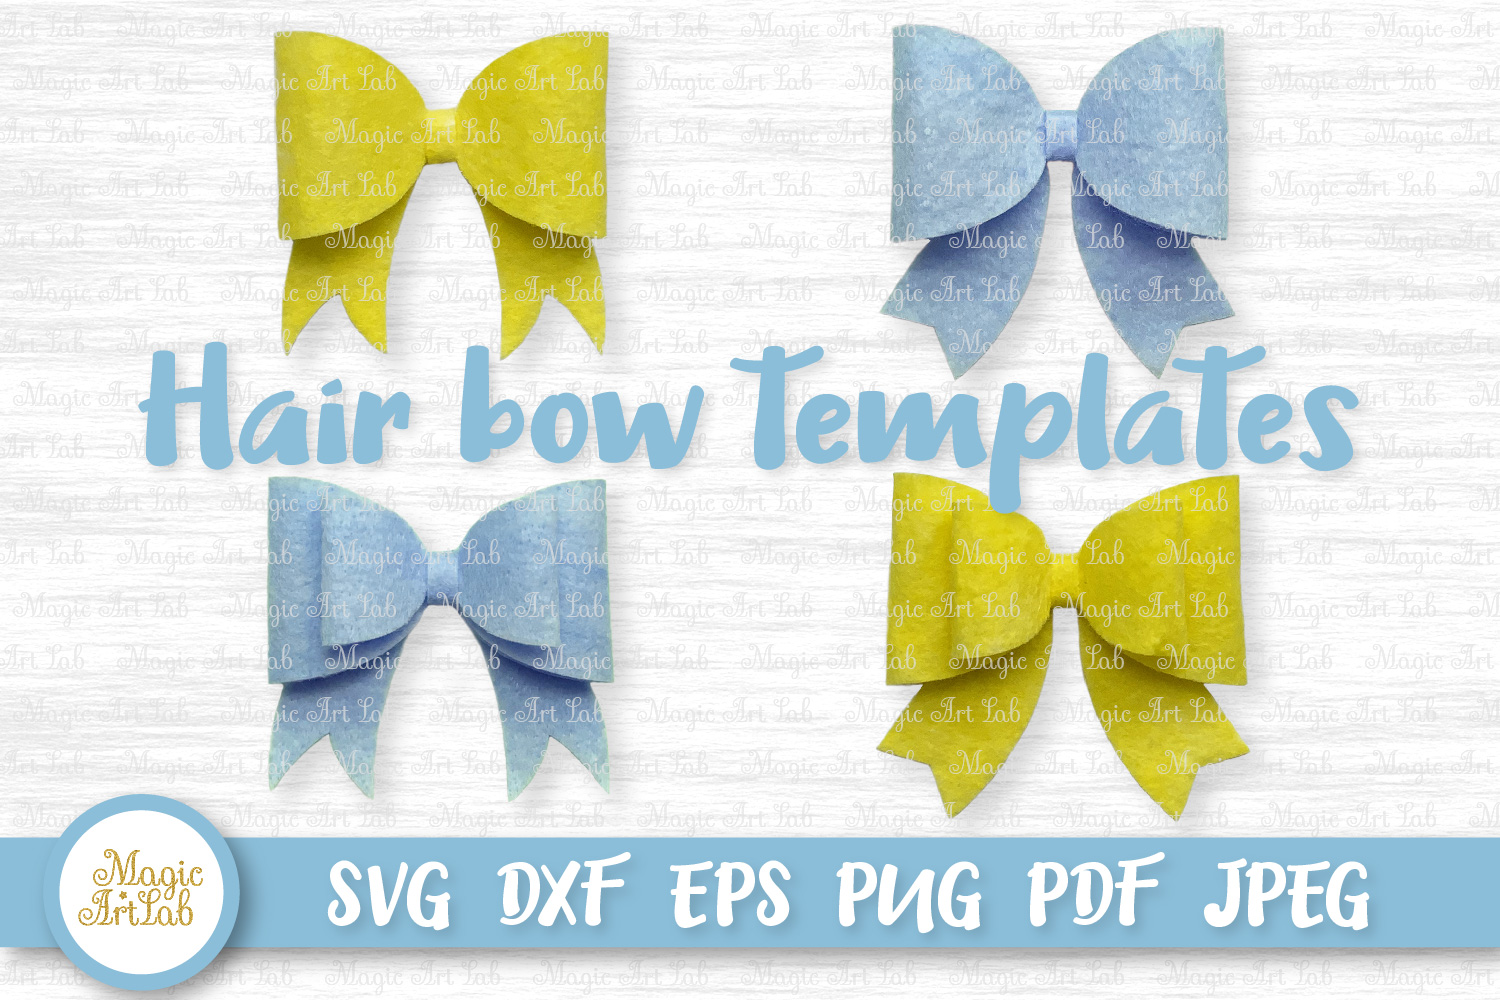 Hair Bow Templates SVG File